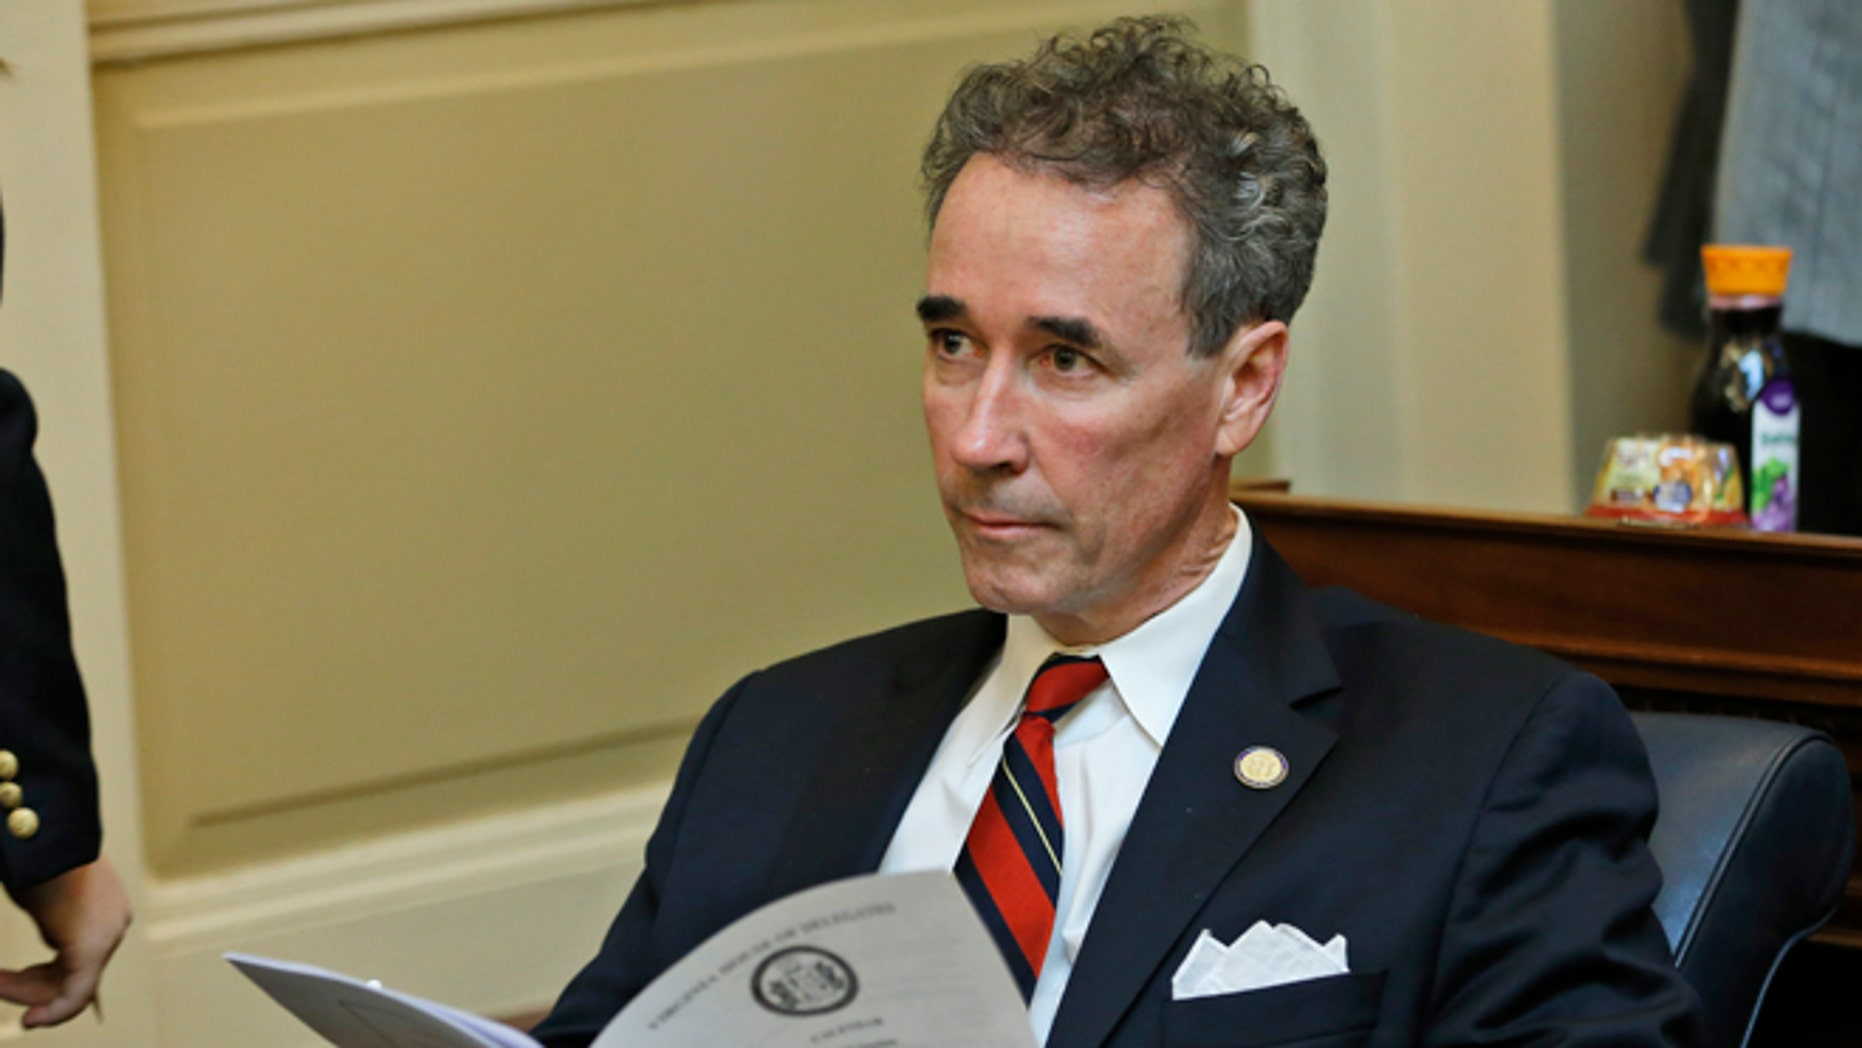 Del. Joe Morrissey, I-Henrico, looks over the calendar during the House session at the Capitol in Richmond, Va., Wednesday, Jan. 21, 2015.